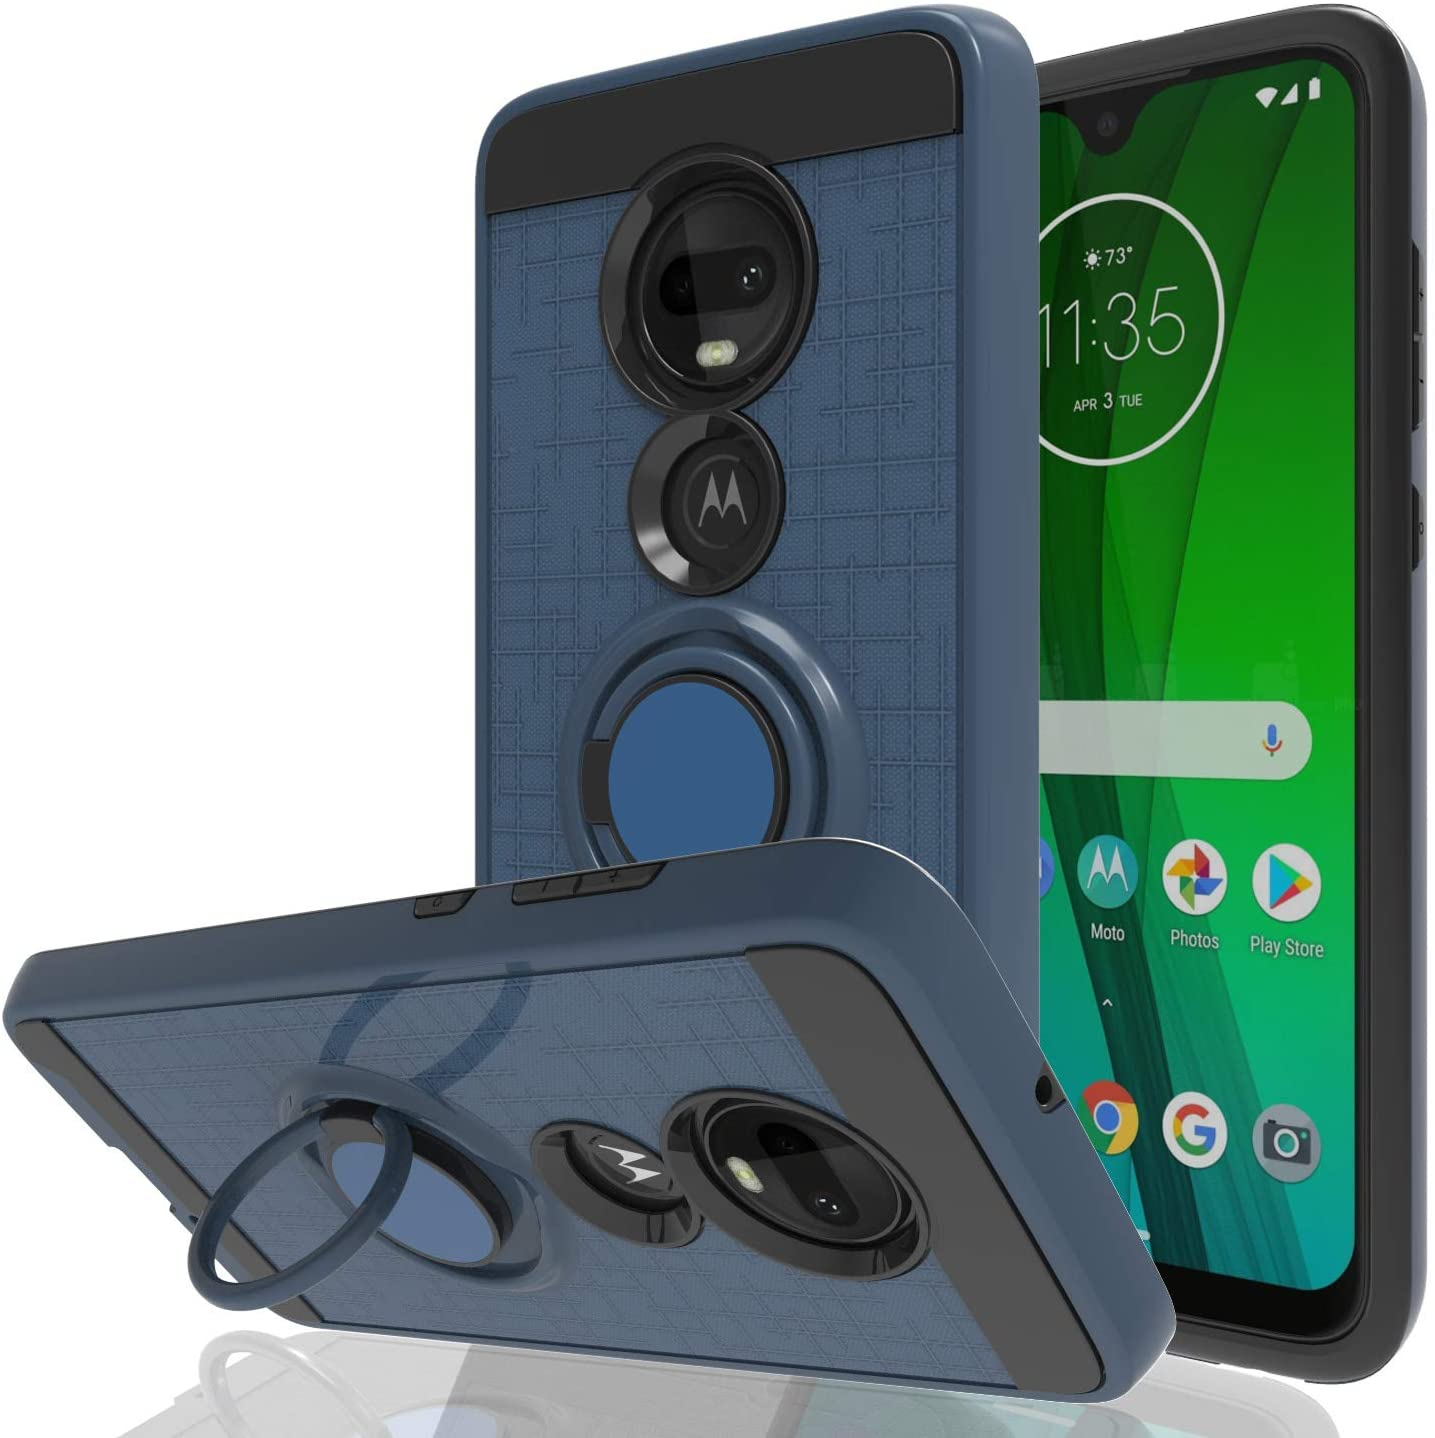 Wtiaw for: Moto G7 Case,Moto G7 Plus Case,Motorola Moto G7 Case,360 Degree Rotating Ring Kickstand [TPU+PC Material] Hybrid Dual Layer Defender Case for Moto G7-CH Metal Slate